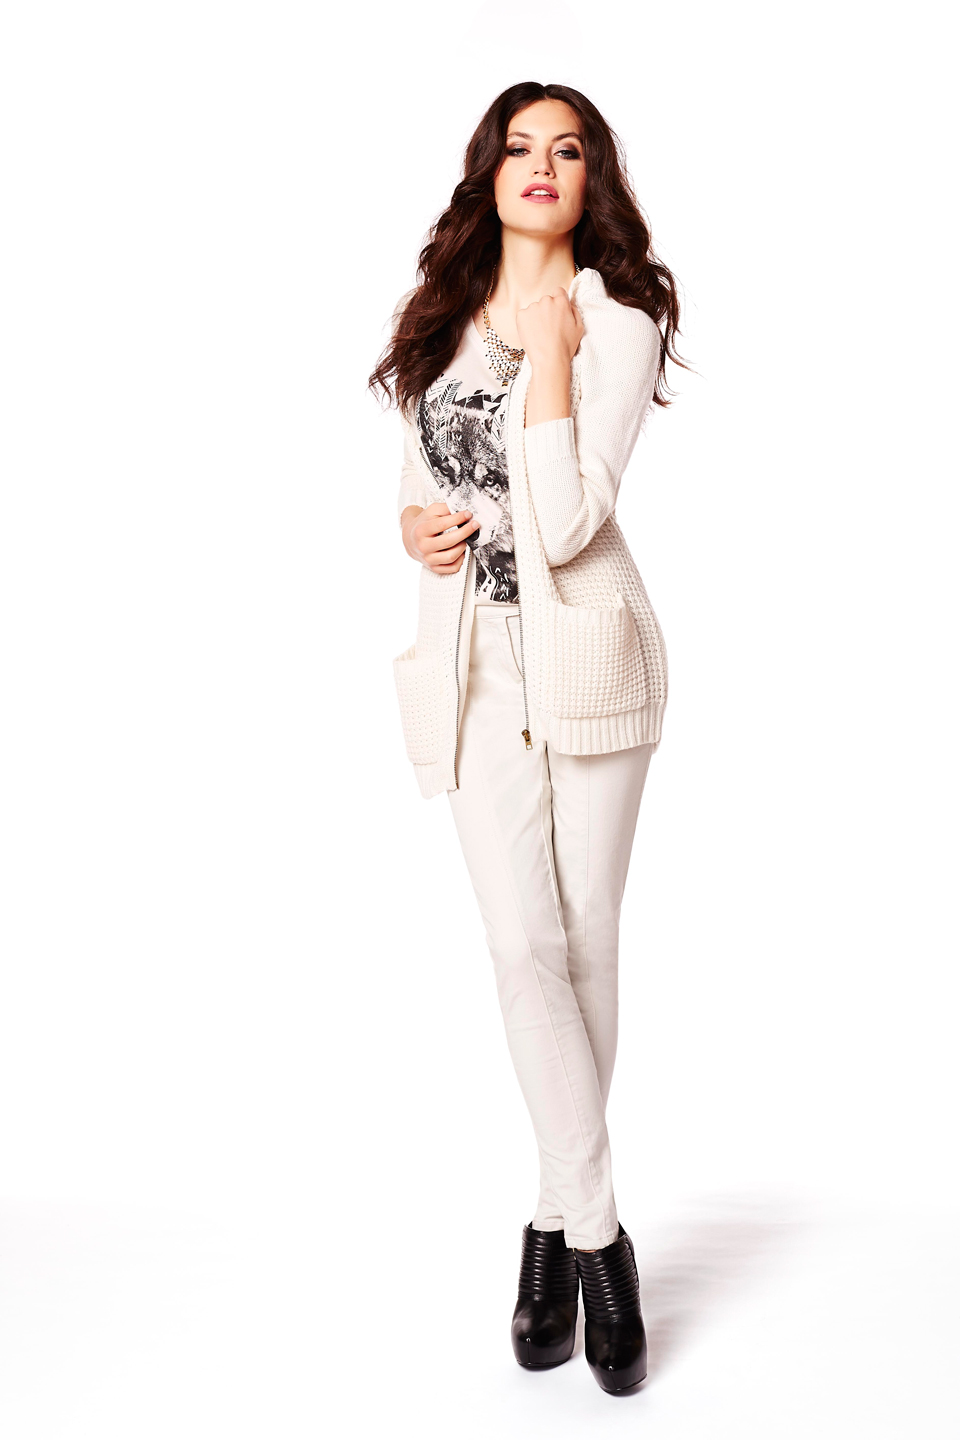 outfit4-960px-wide.jpg